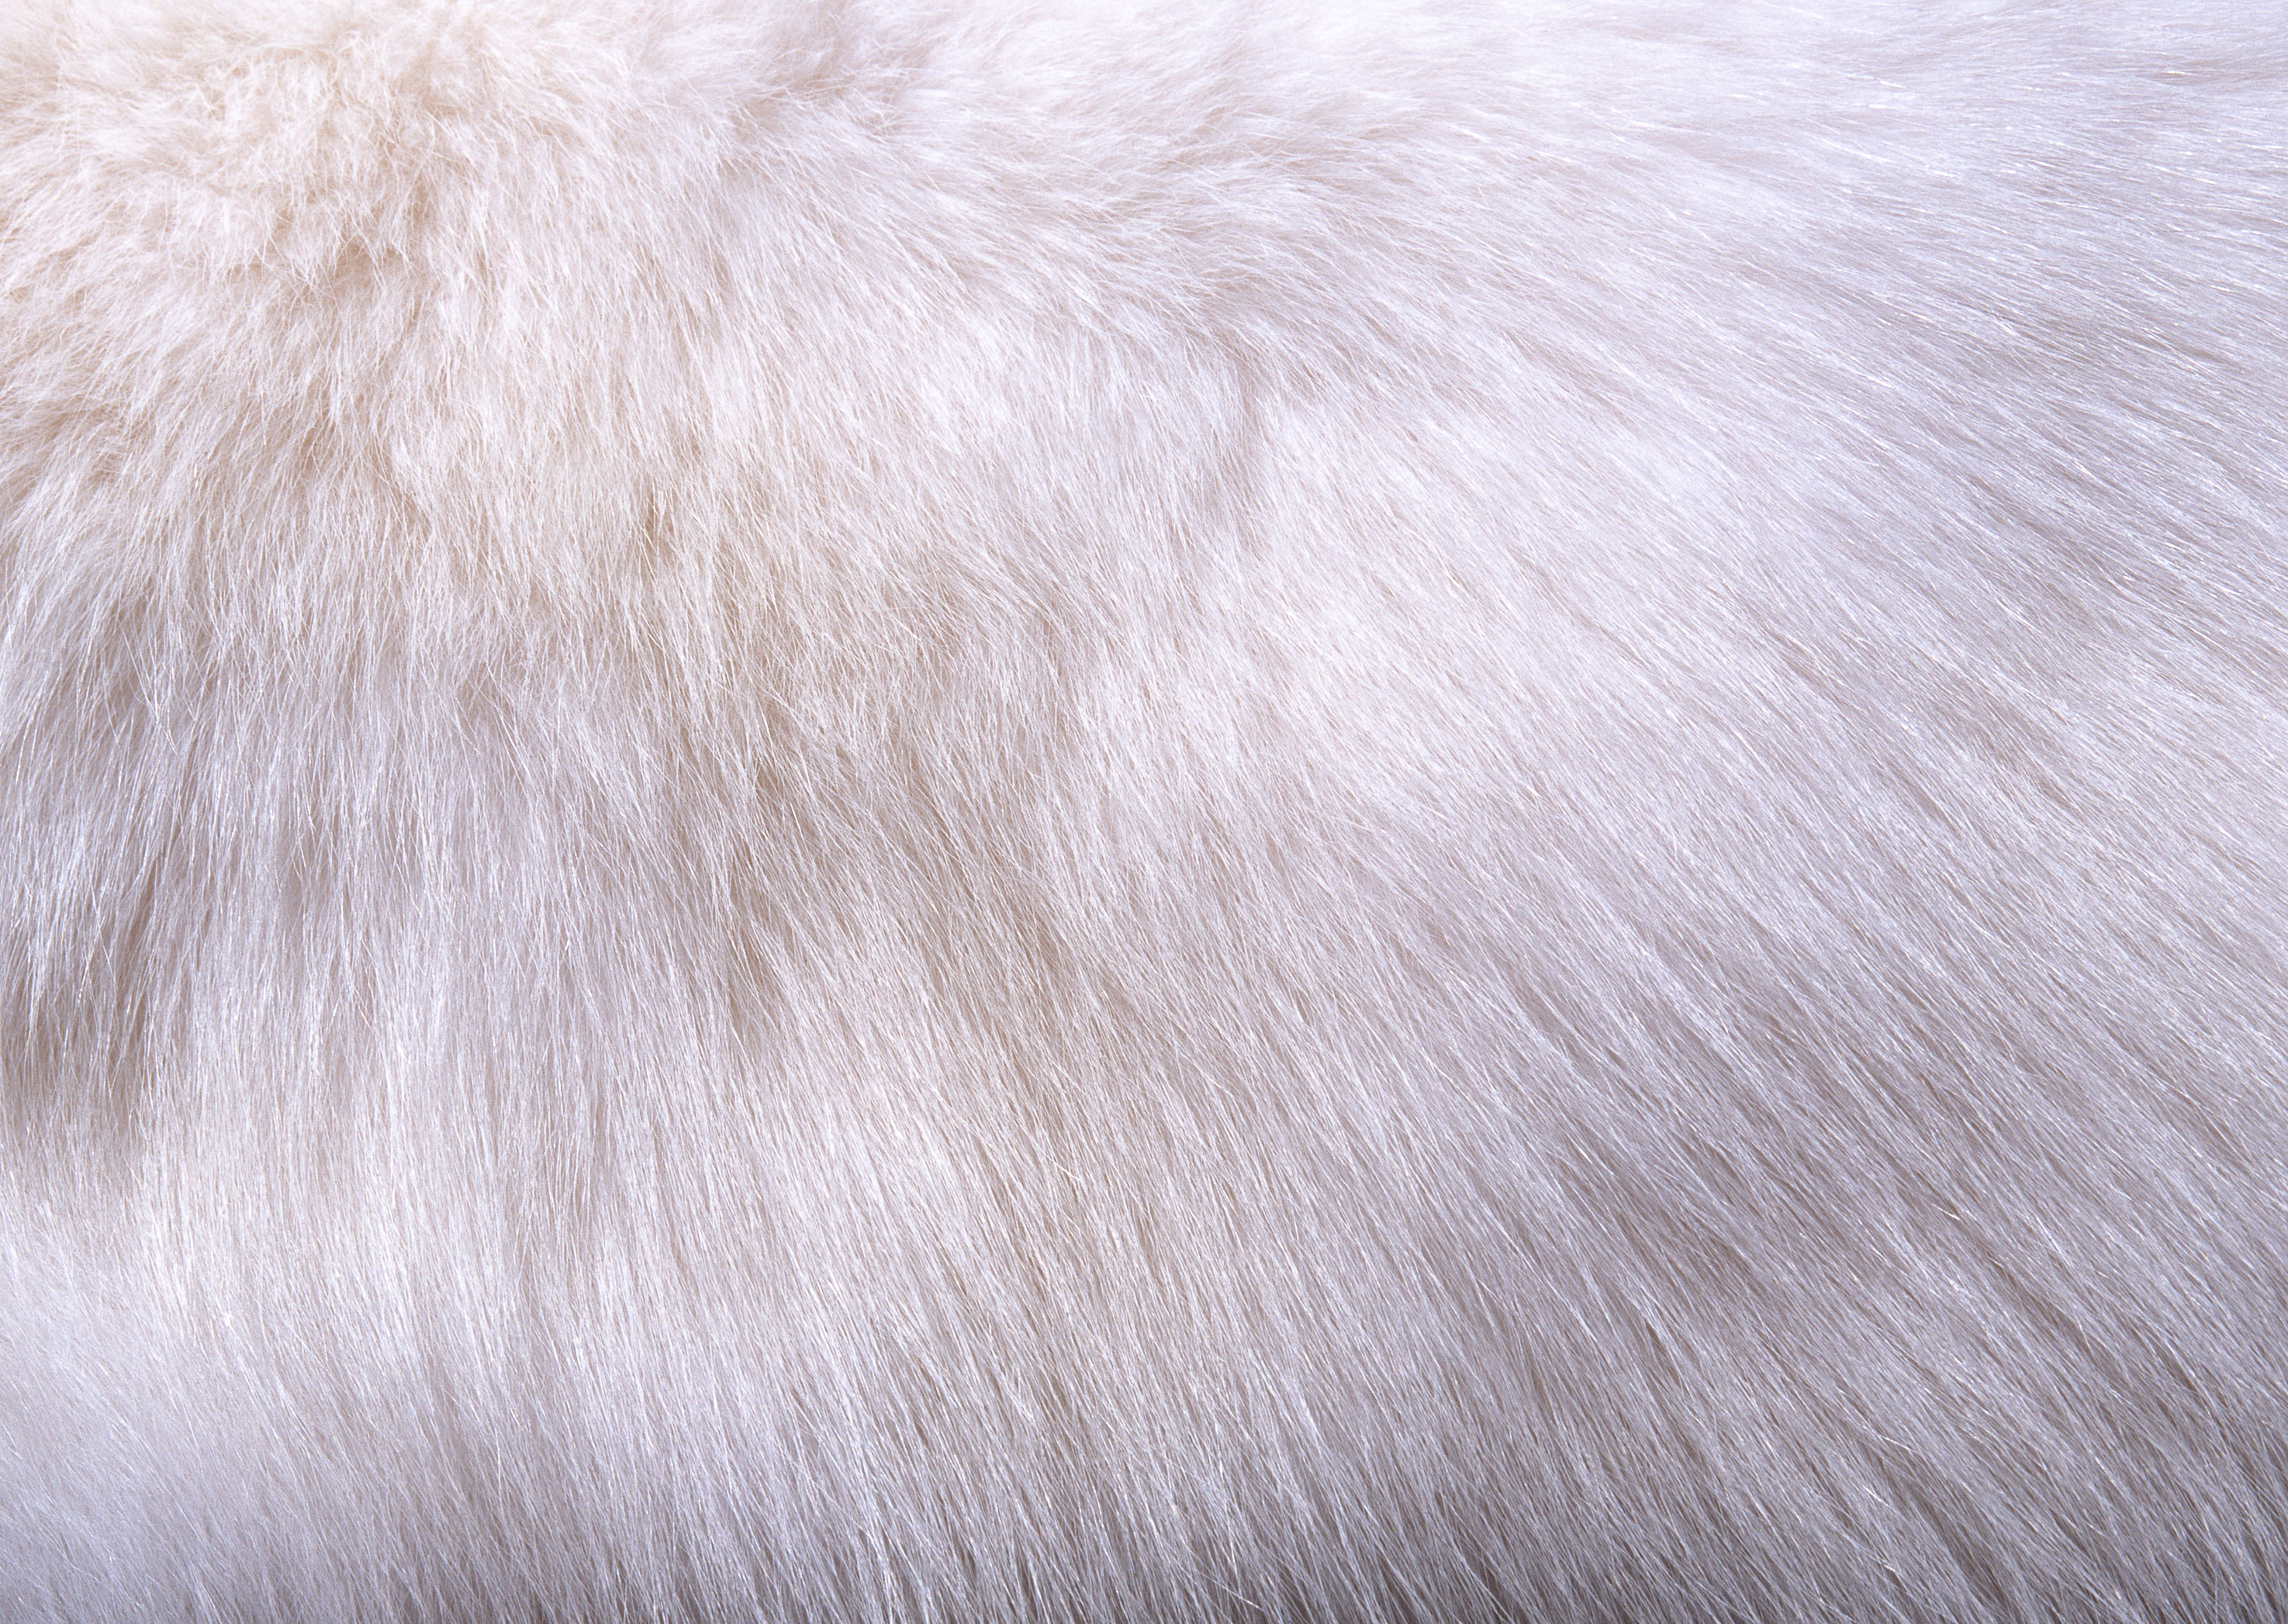 White fur texture background image - White fur texture background ...